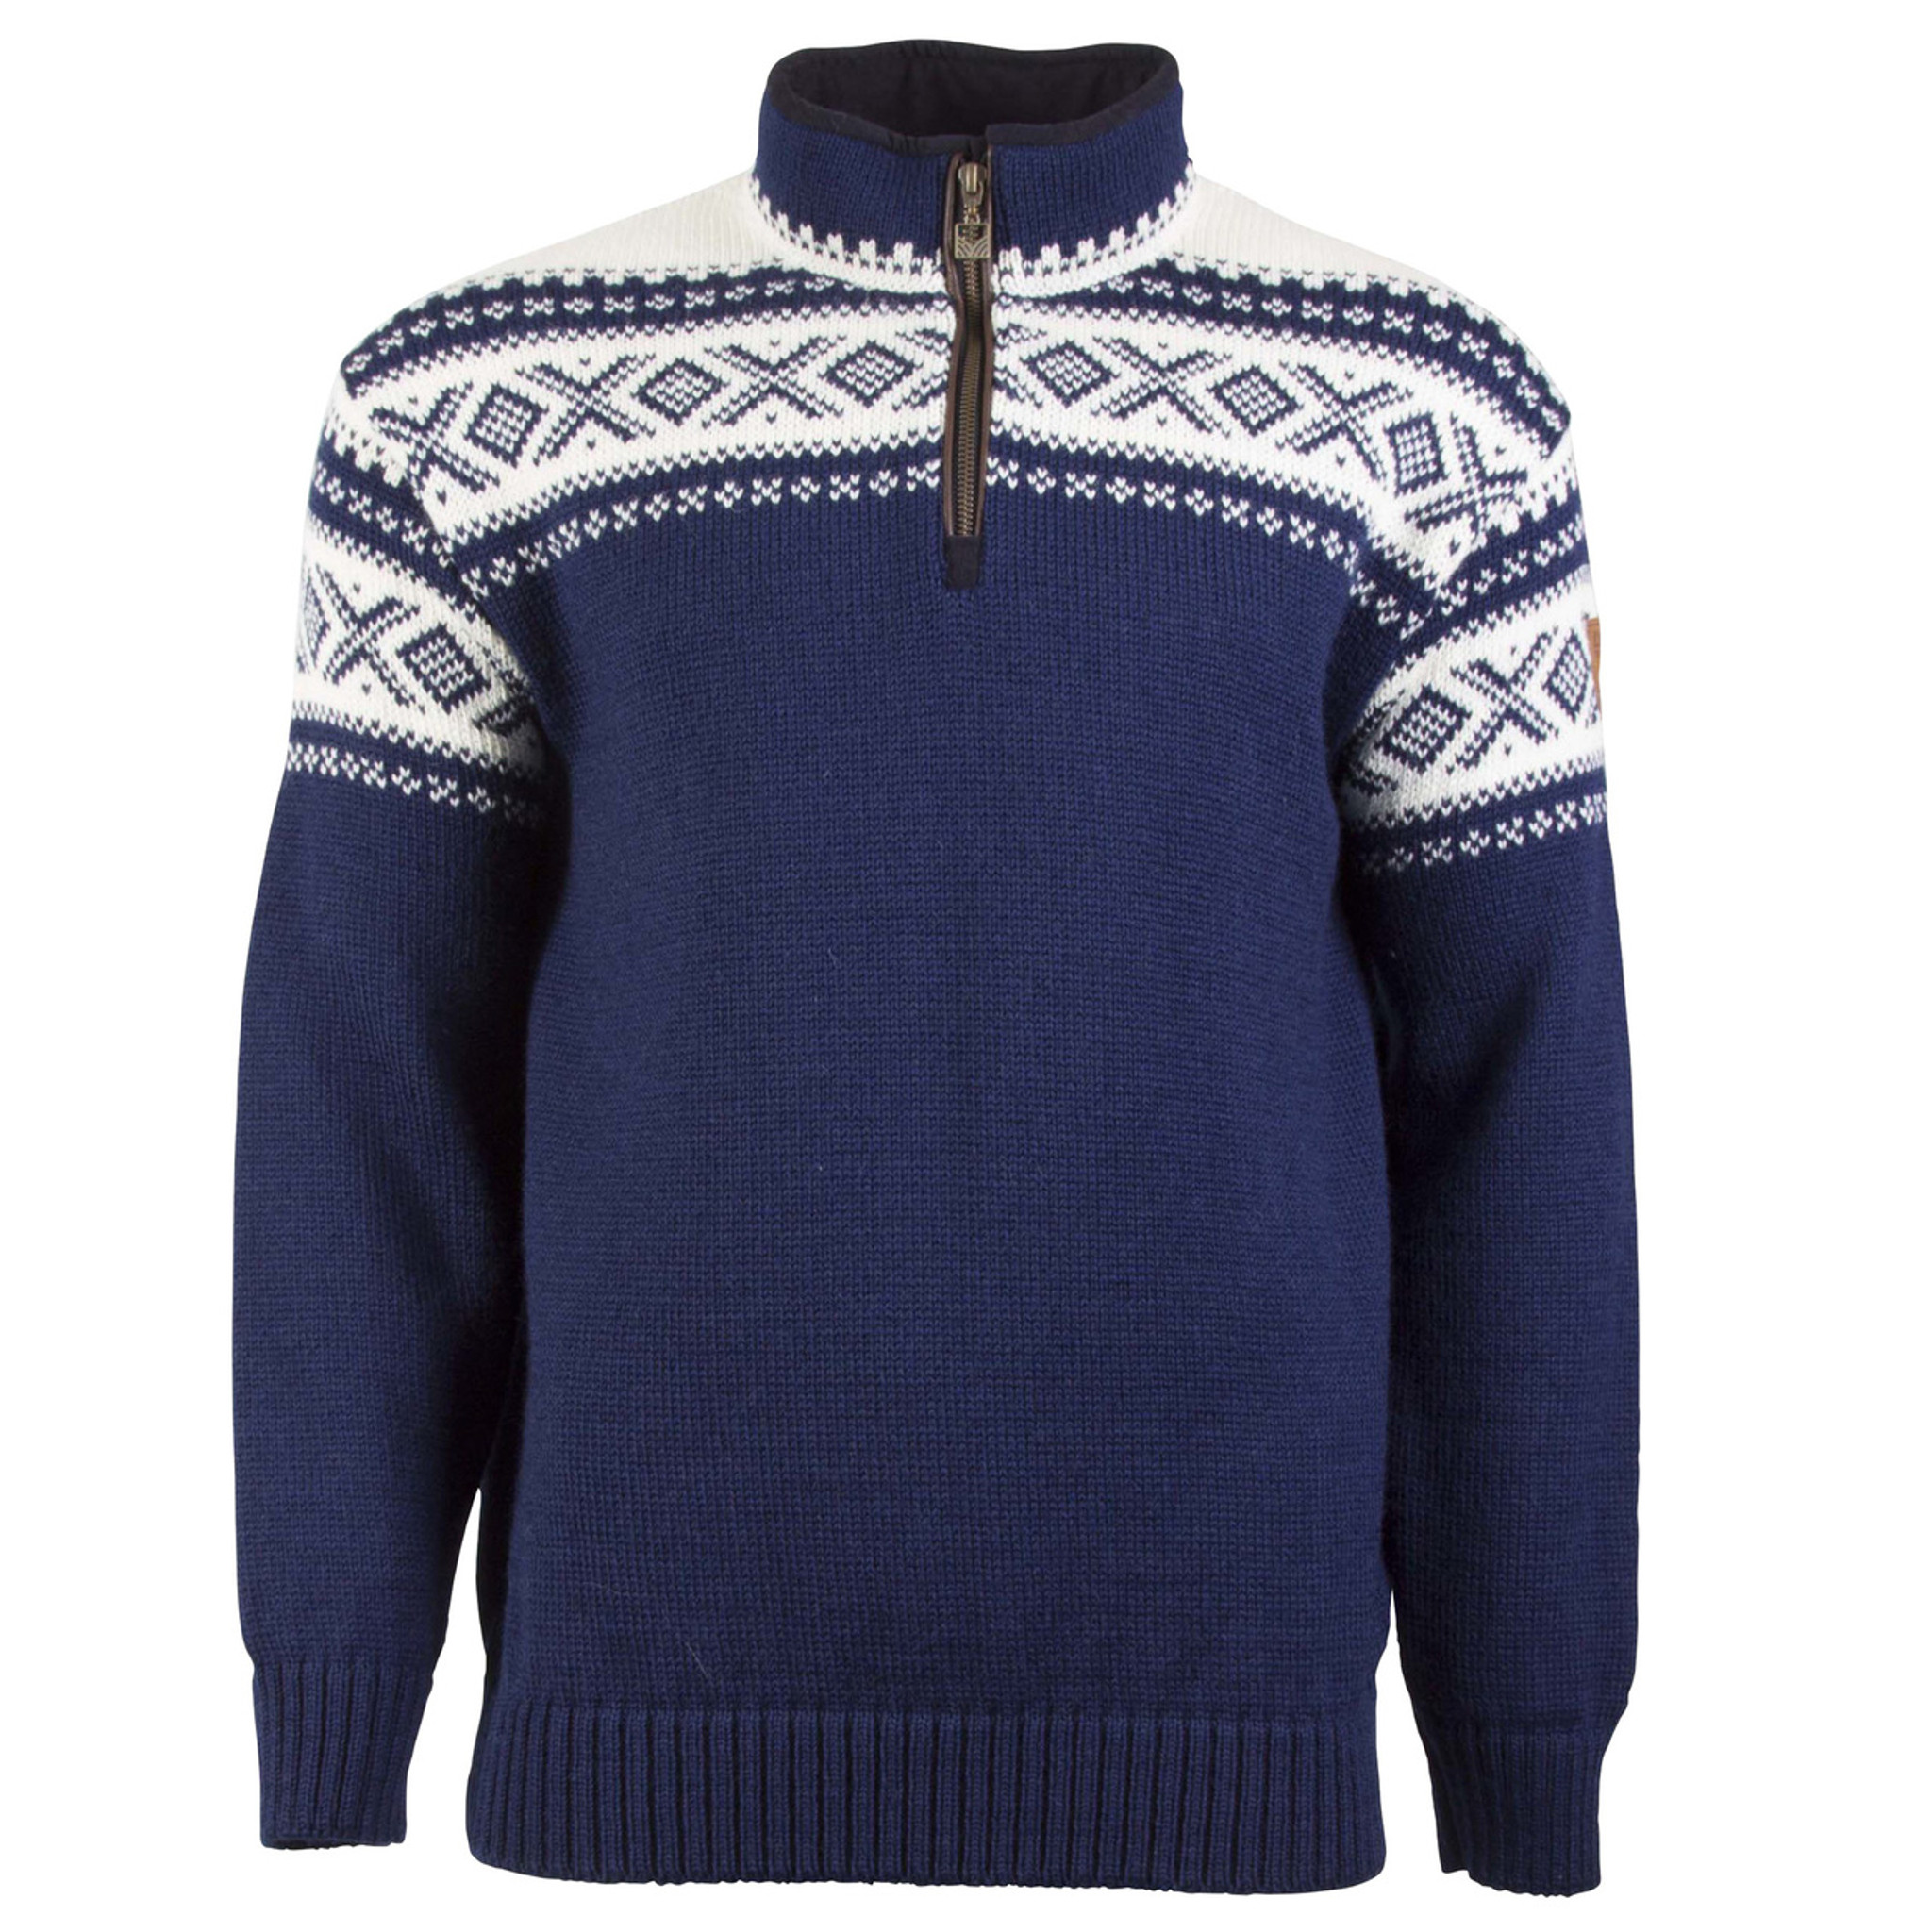 e0724f95 Dale of Norway, Cortina Half Zip sweater, Unisex, in Light Navy/Off Click  to enlarge